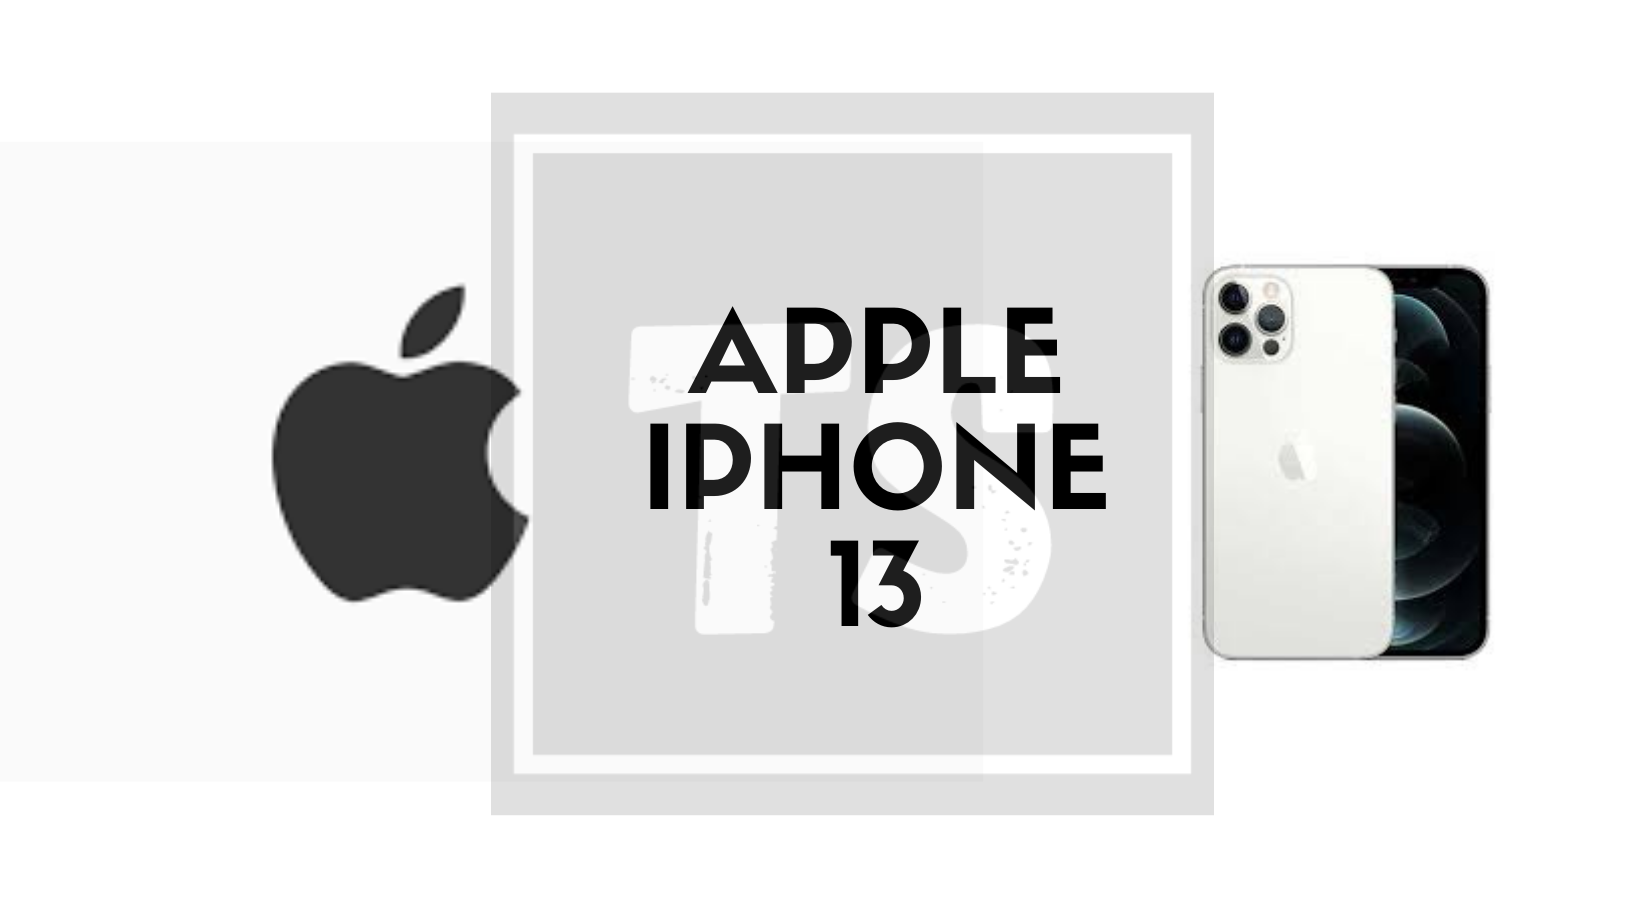 Apple iPhone 13: Upcoming iPhone in 2021